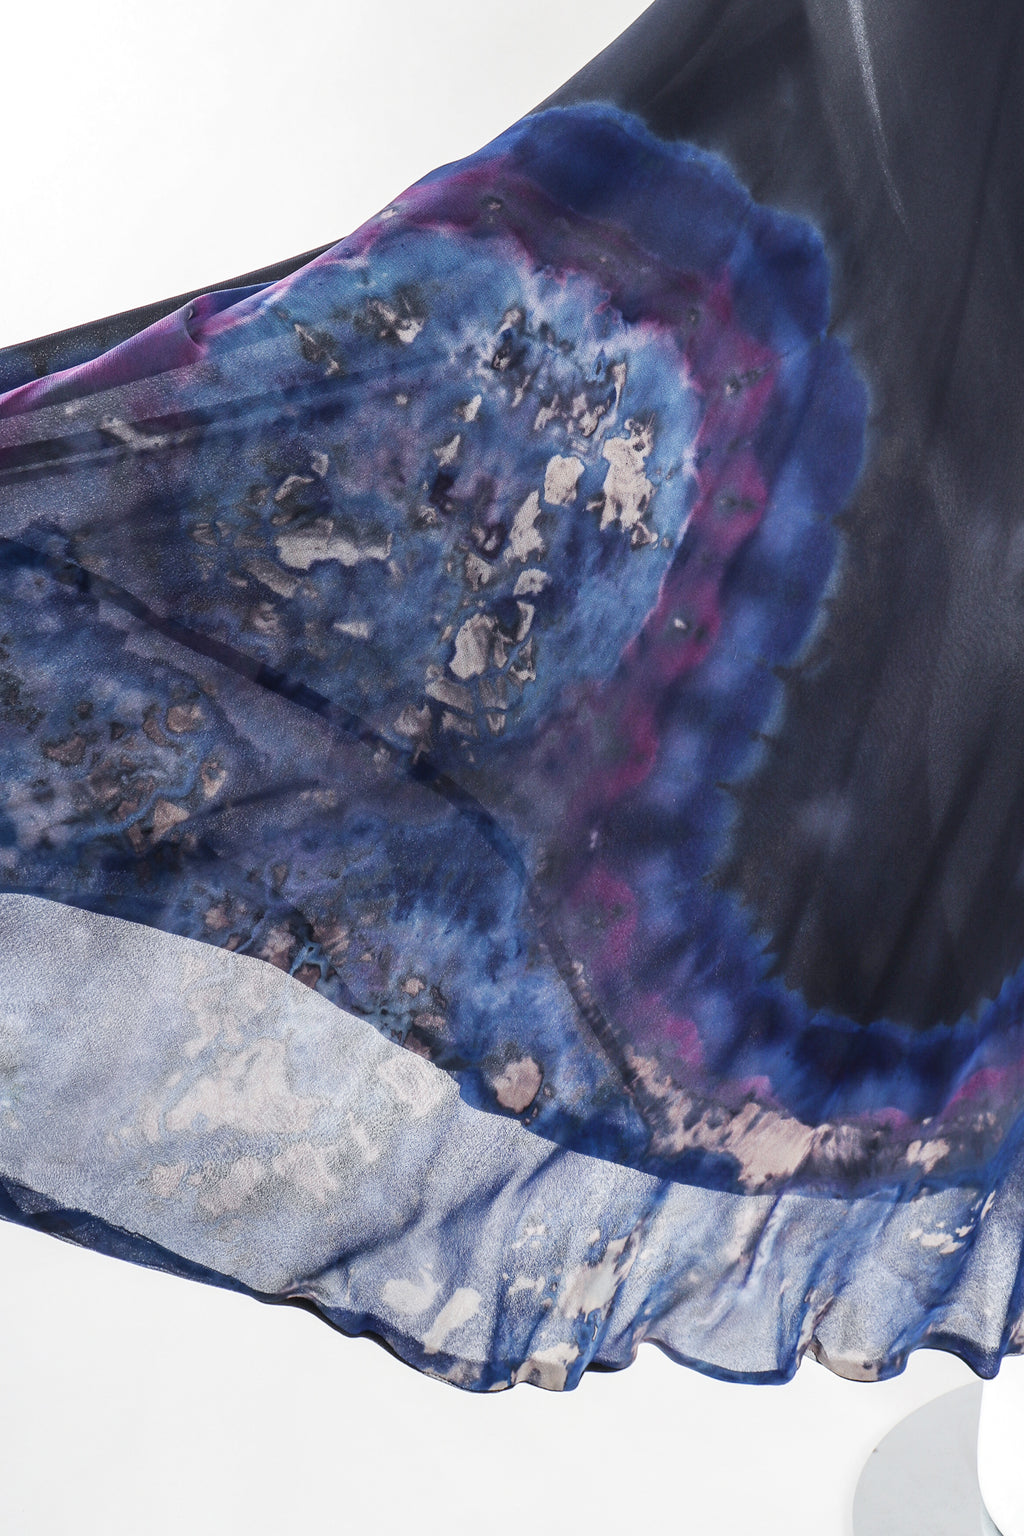 Recess Los Angeles Designer Consignment Resale Recycled Vintage Antoine Akopian Silk Chiffon Tie-Dye Galaxy Wrap Skirt